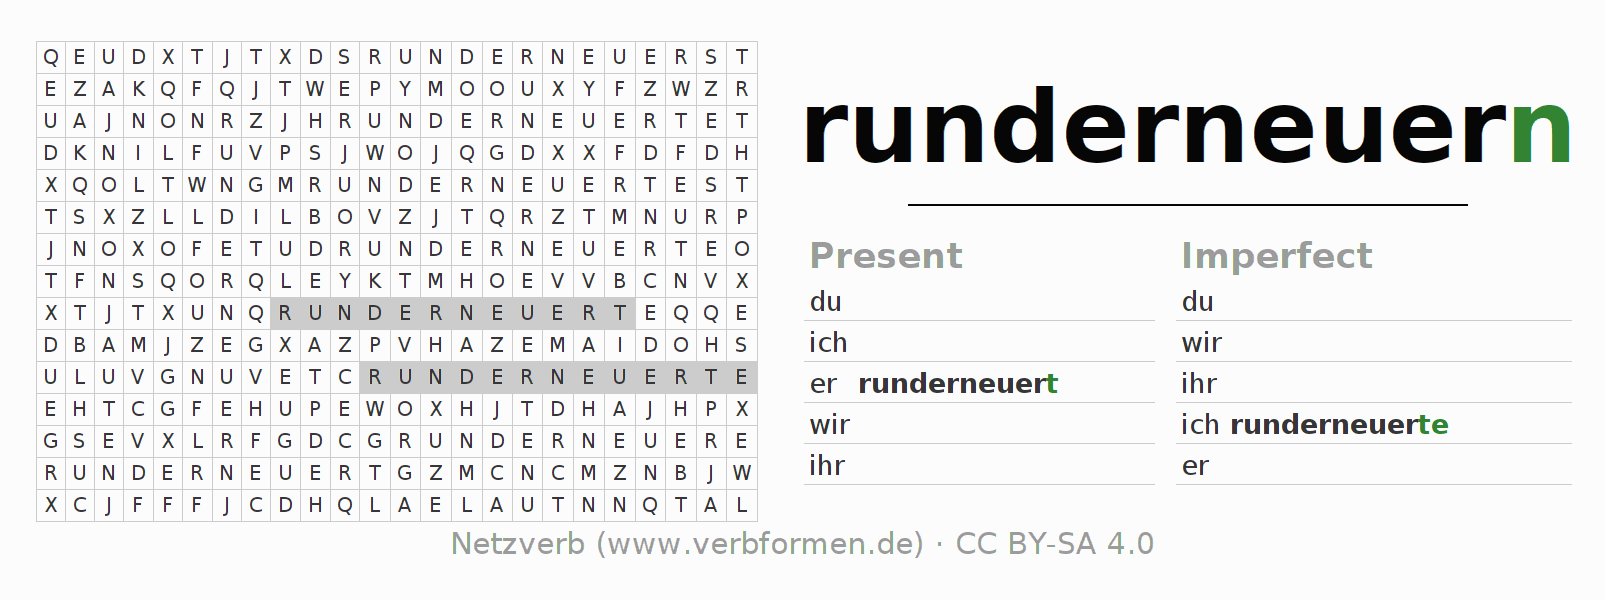 Word search puzzle for the conjugation of the verb runderneuern